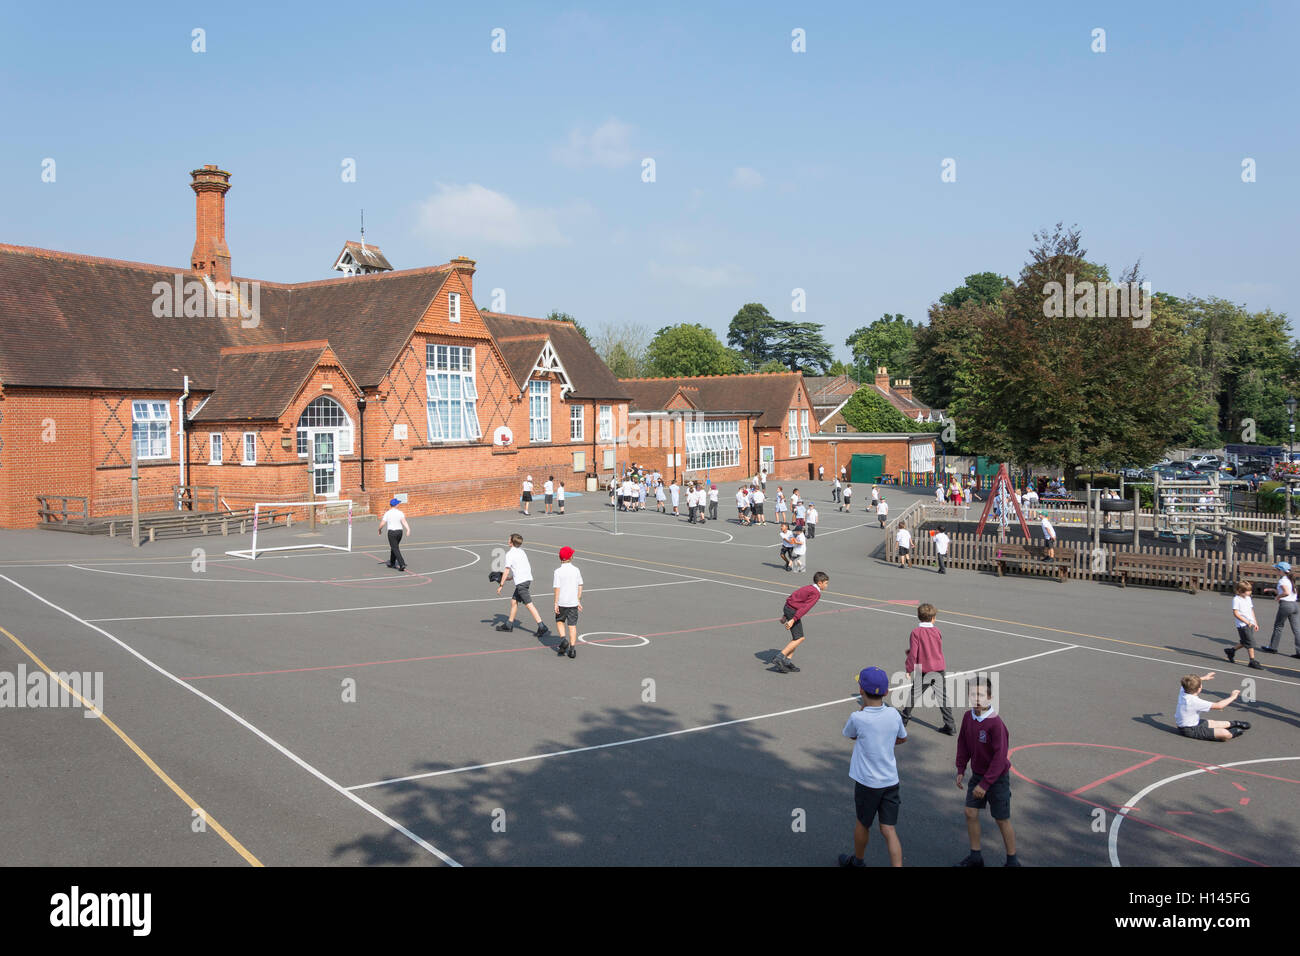 Children in playground, St Michael's Church of England Primary School, High St, Sunninghill, Berkshire, England, - Stock Image